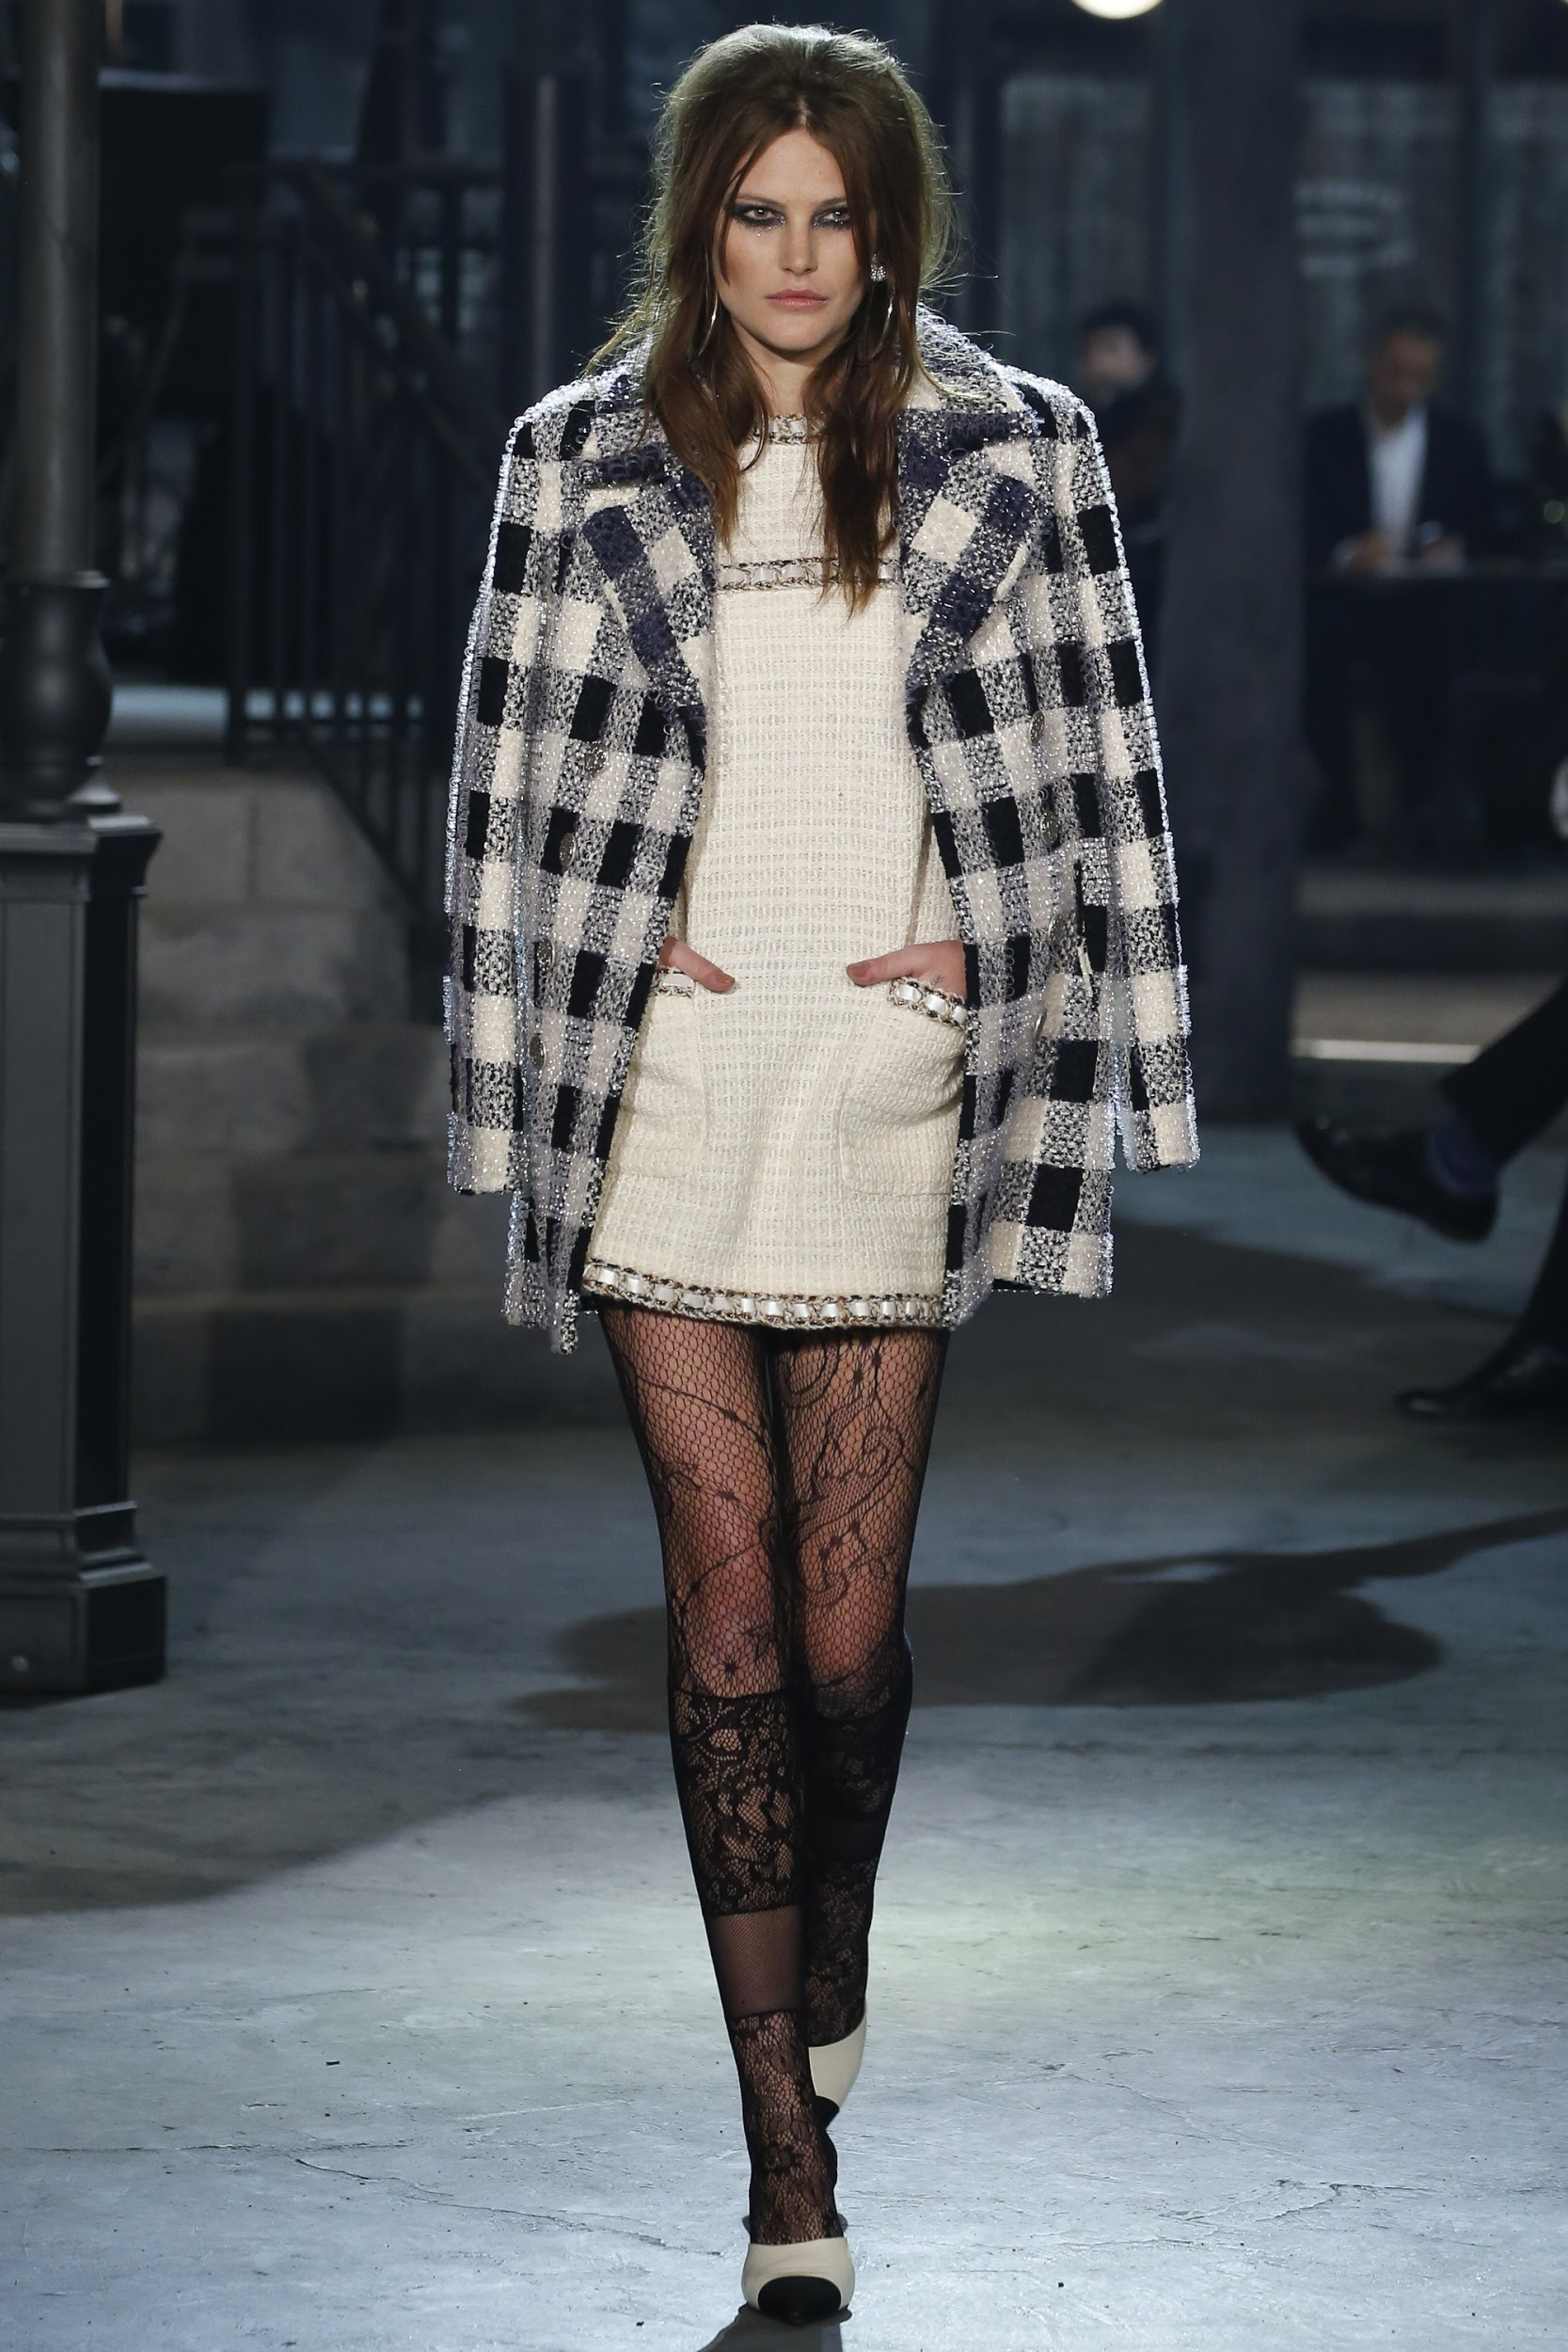 A model is wearing a tweed black and white checked coat with a white mini dress, lace stockings, and black and white heels